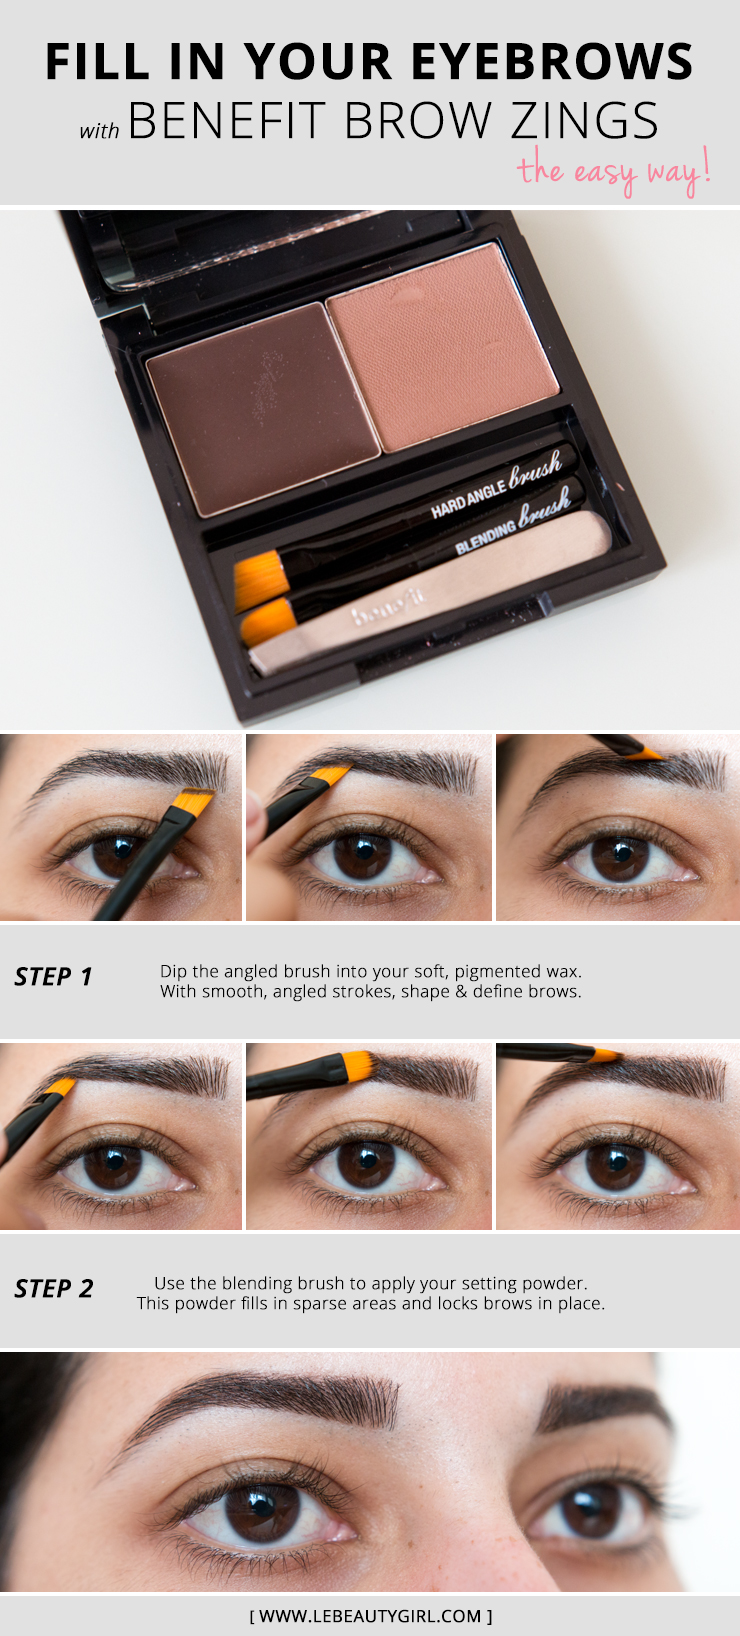 How To Fill In Eyebrows With Benefit Brow Zings | Beauty Girl